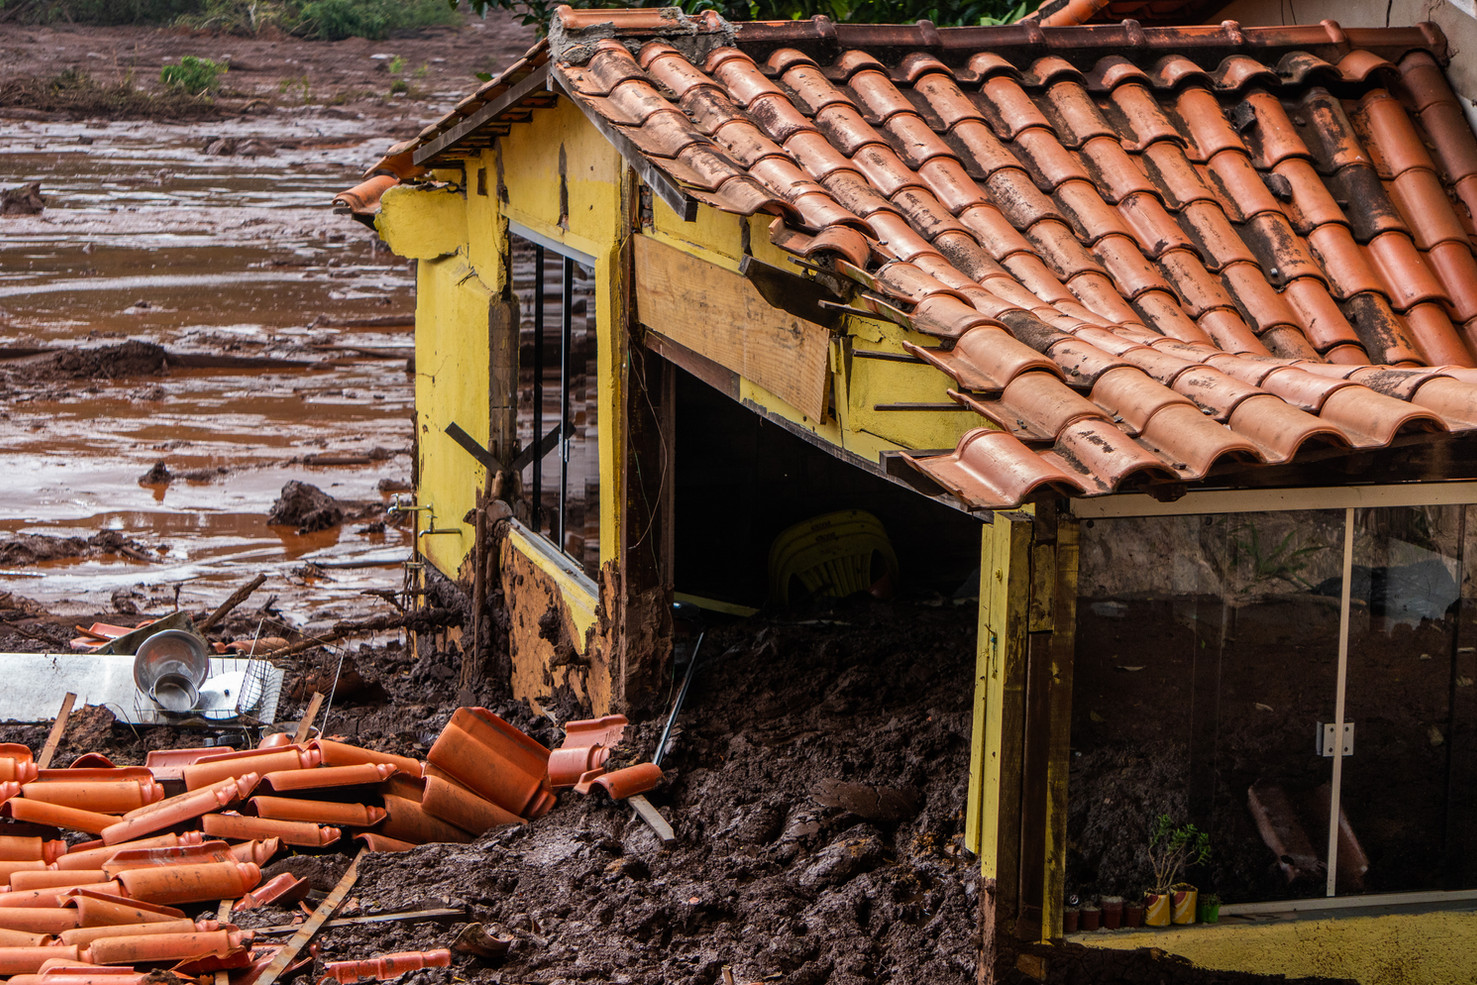 The worst social environmental tragedy of Brazilian history was the mining dam collapse from Vale S.A. (the world's largest iron ore producer) that pouredits mud on the residents of Brumadinho andalso killedthe Rio Paraopeba,January 24, 2019. These photographs are the registersof ten consecutive days in the regions affected by the disaster (01/26 to 02/02 of 2019).